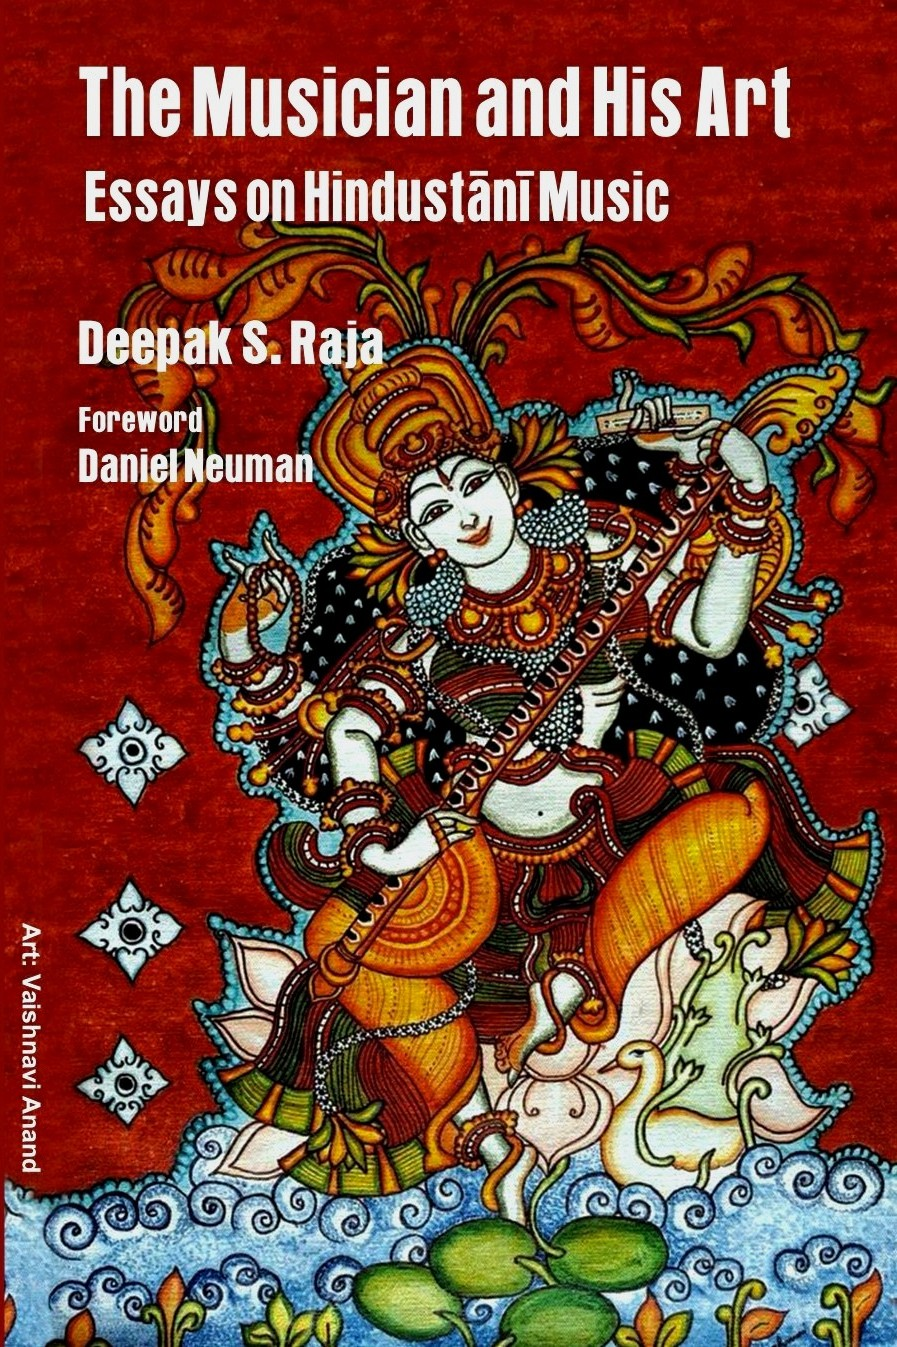 The Musician and His Art: Deepak Raja